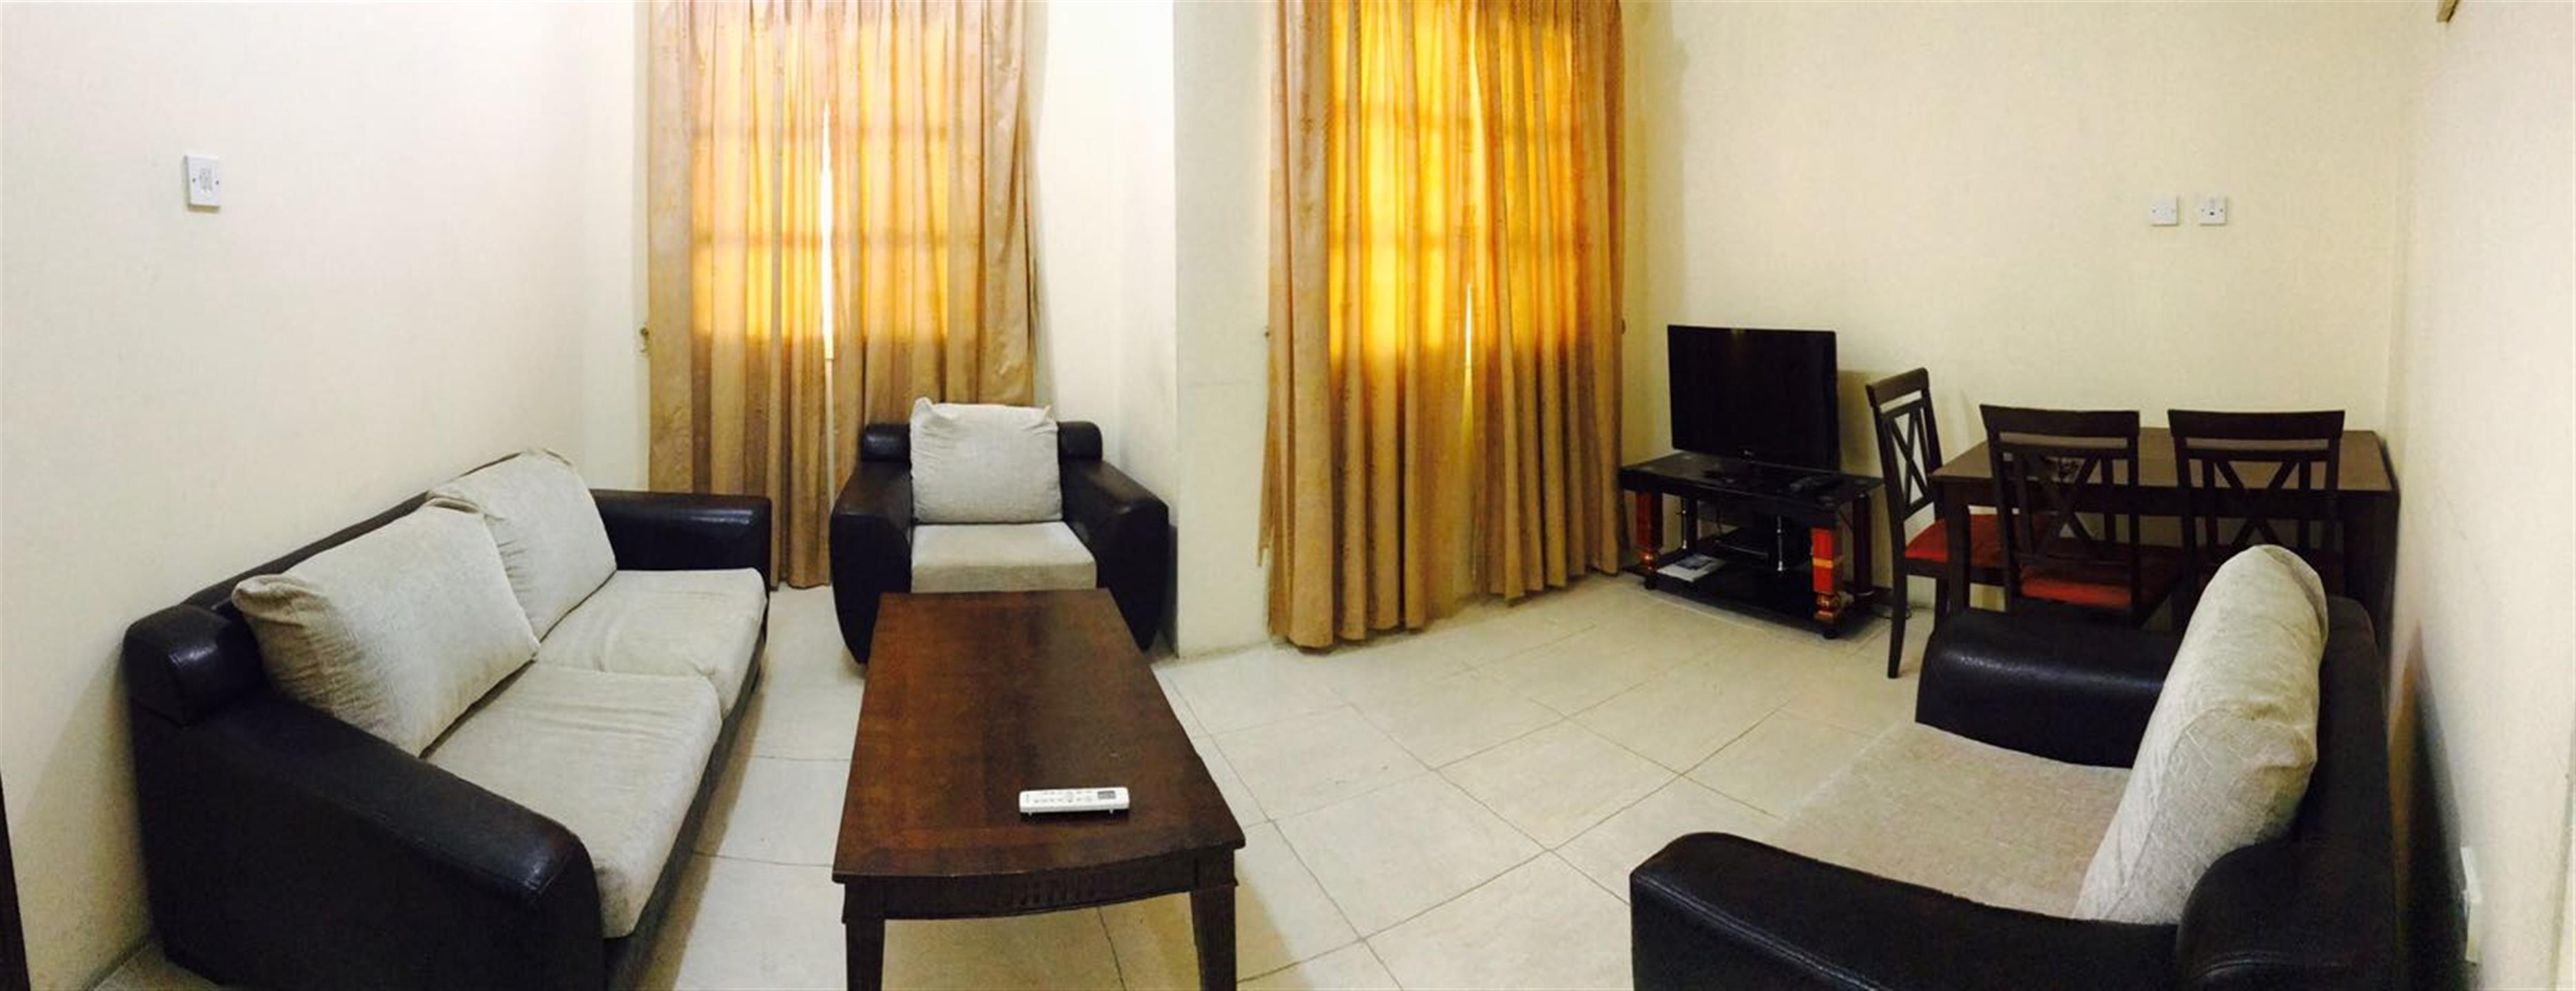 2 Bedroom Apartment For Rent In Bin Omran